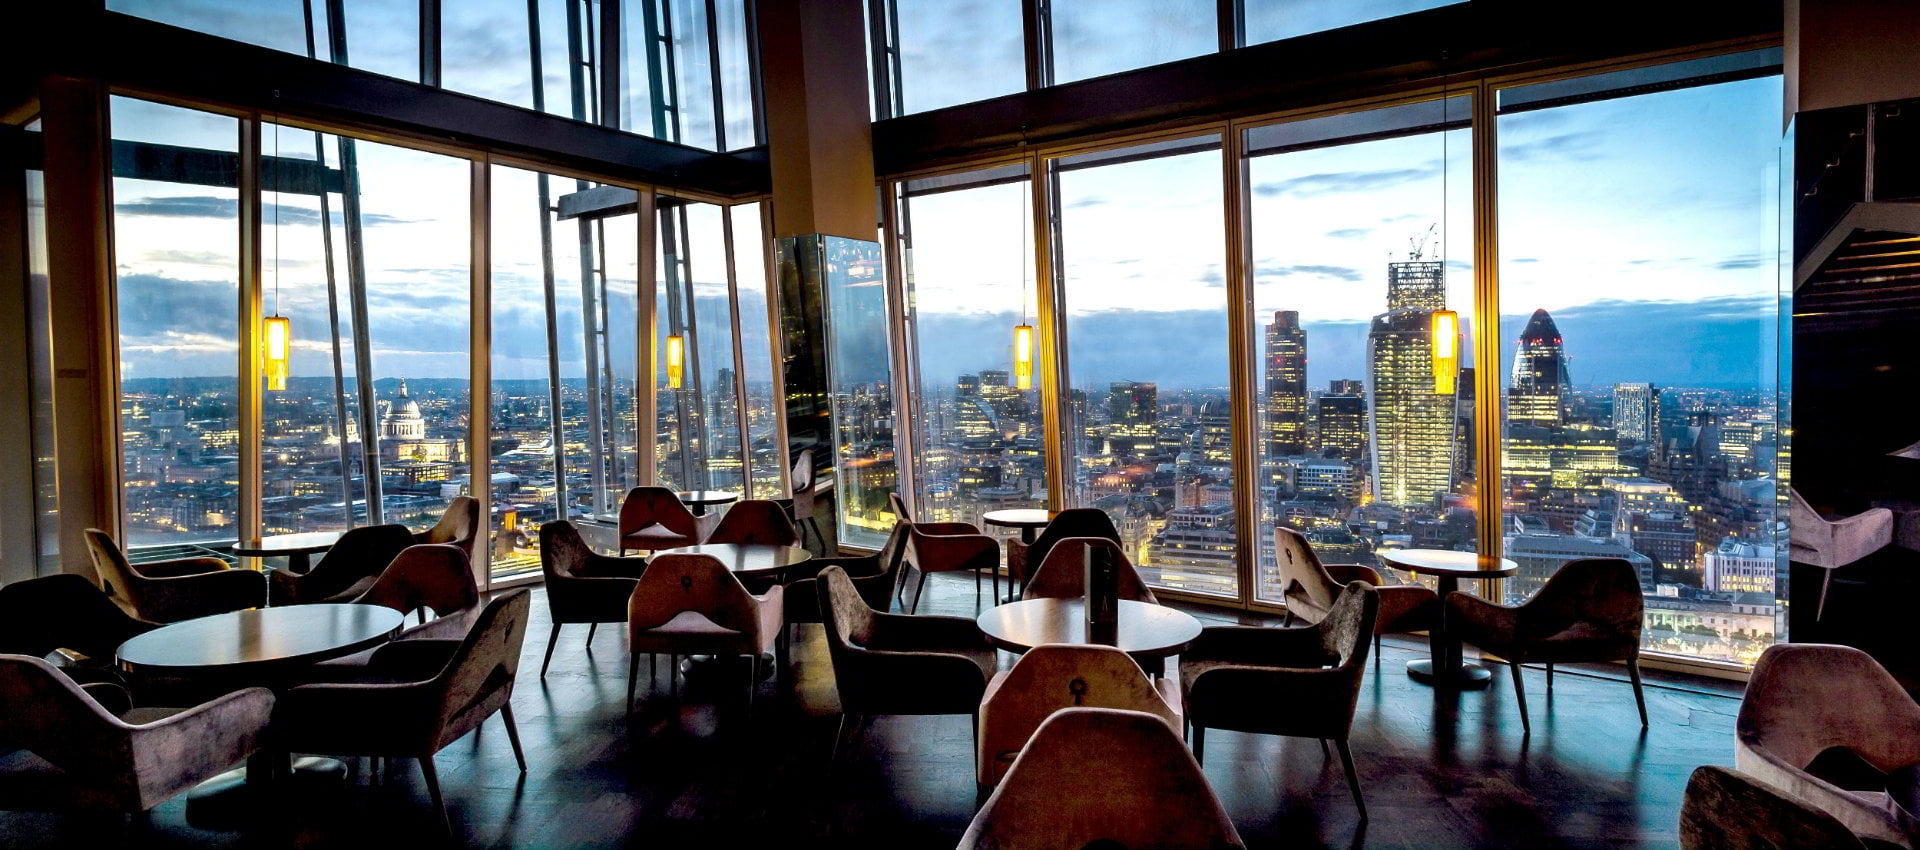 Aqua shard all day dining with frankly ridiculous views for Restaurants at the shard